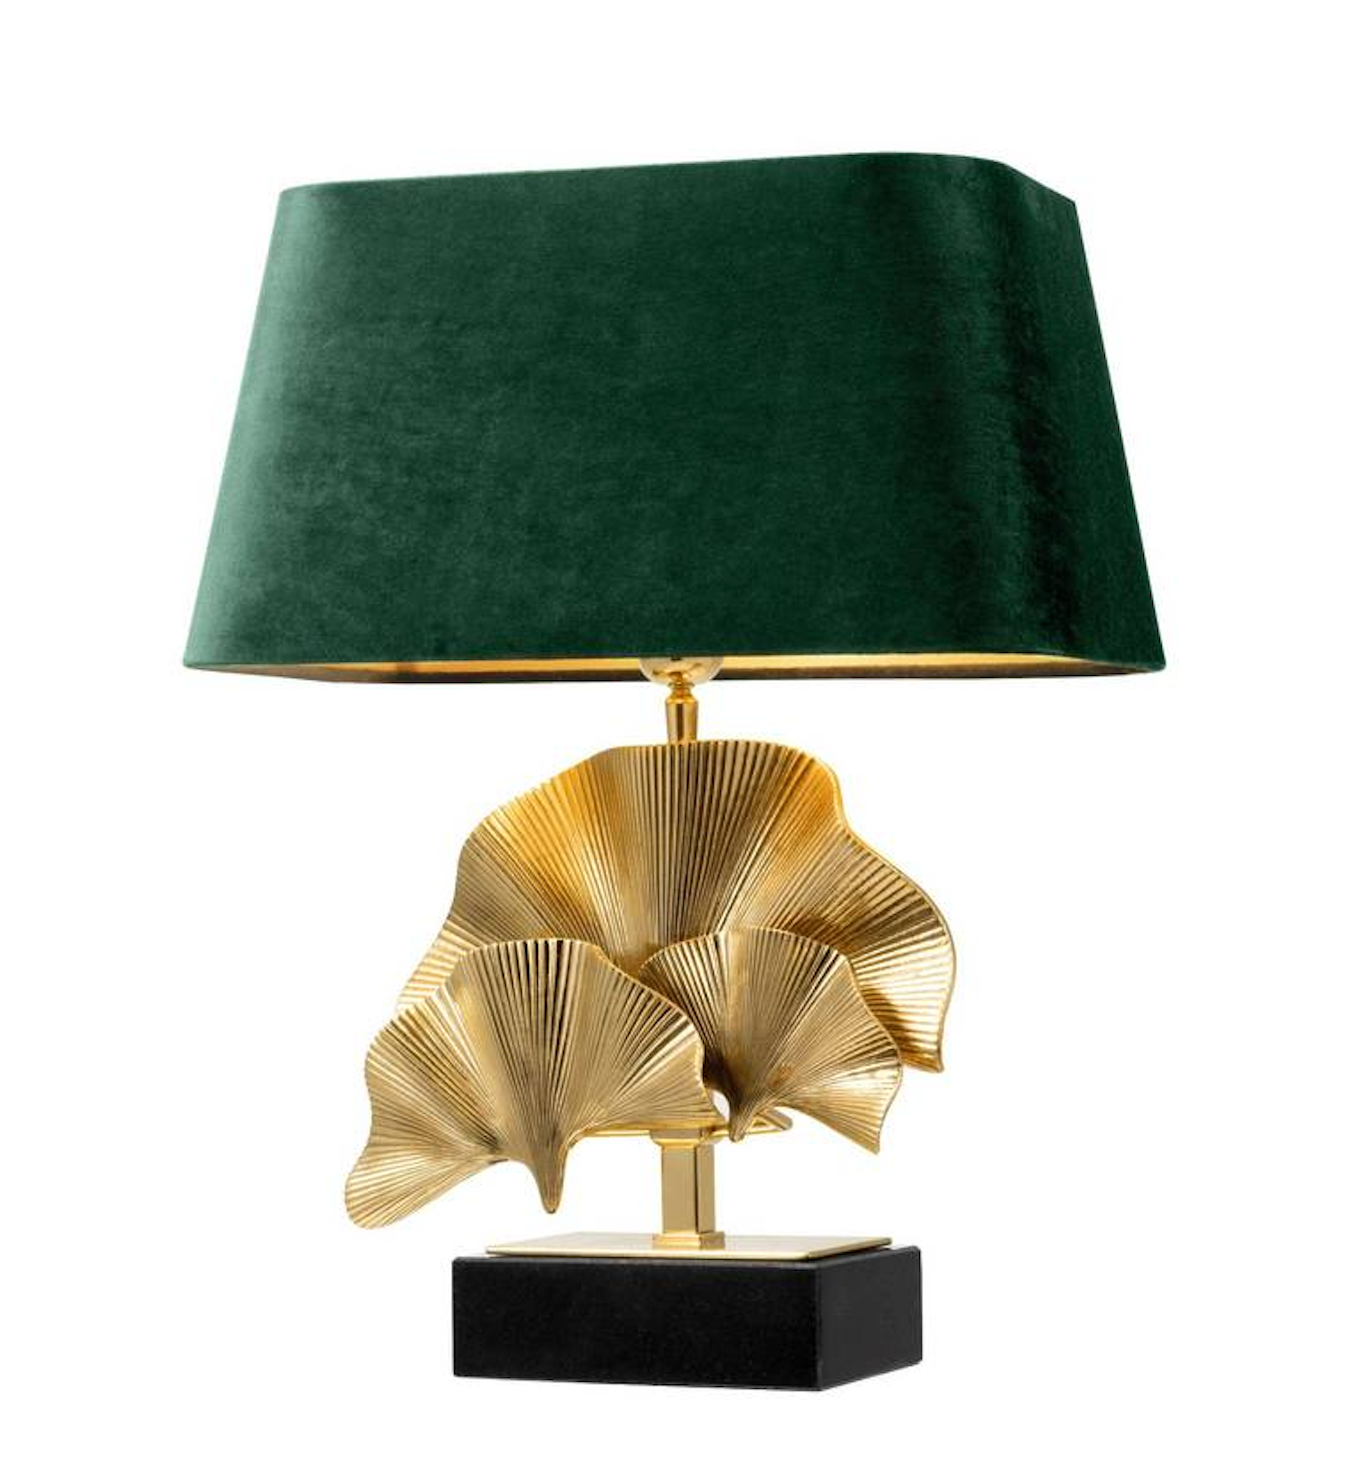 Table lamp Olivier S